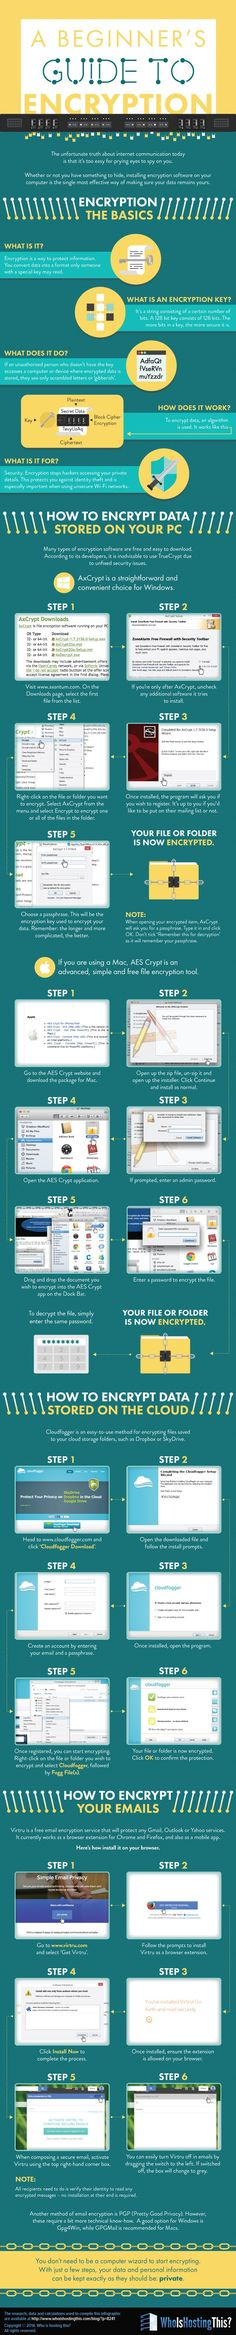 Discover new TIPS!  Discover new TIPS!  Published by: WhoIsHostingThis.com Original source: here TIPS FOR: education, education and communications, software, technology